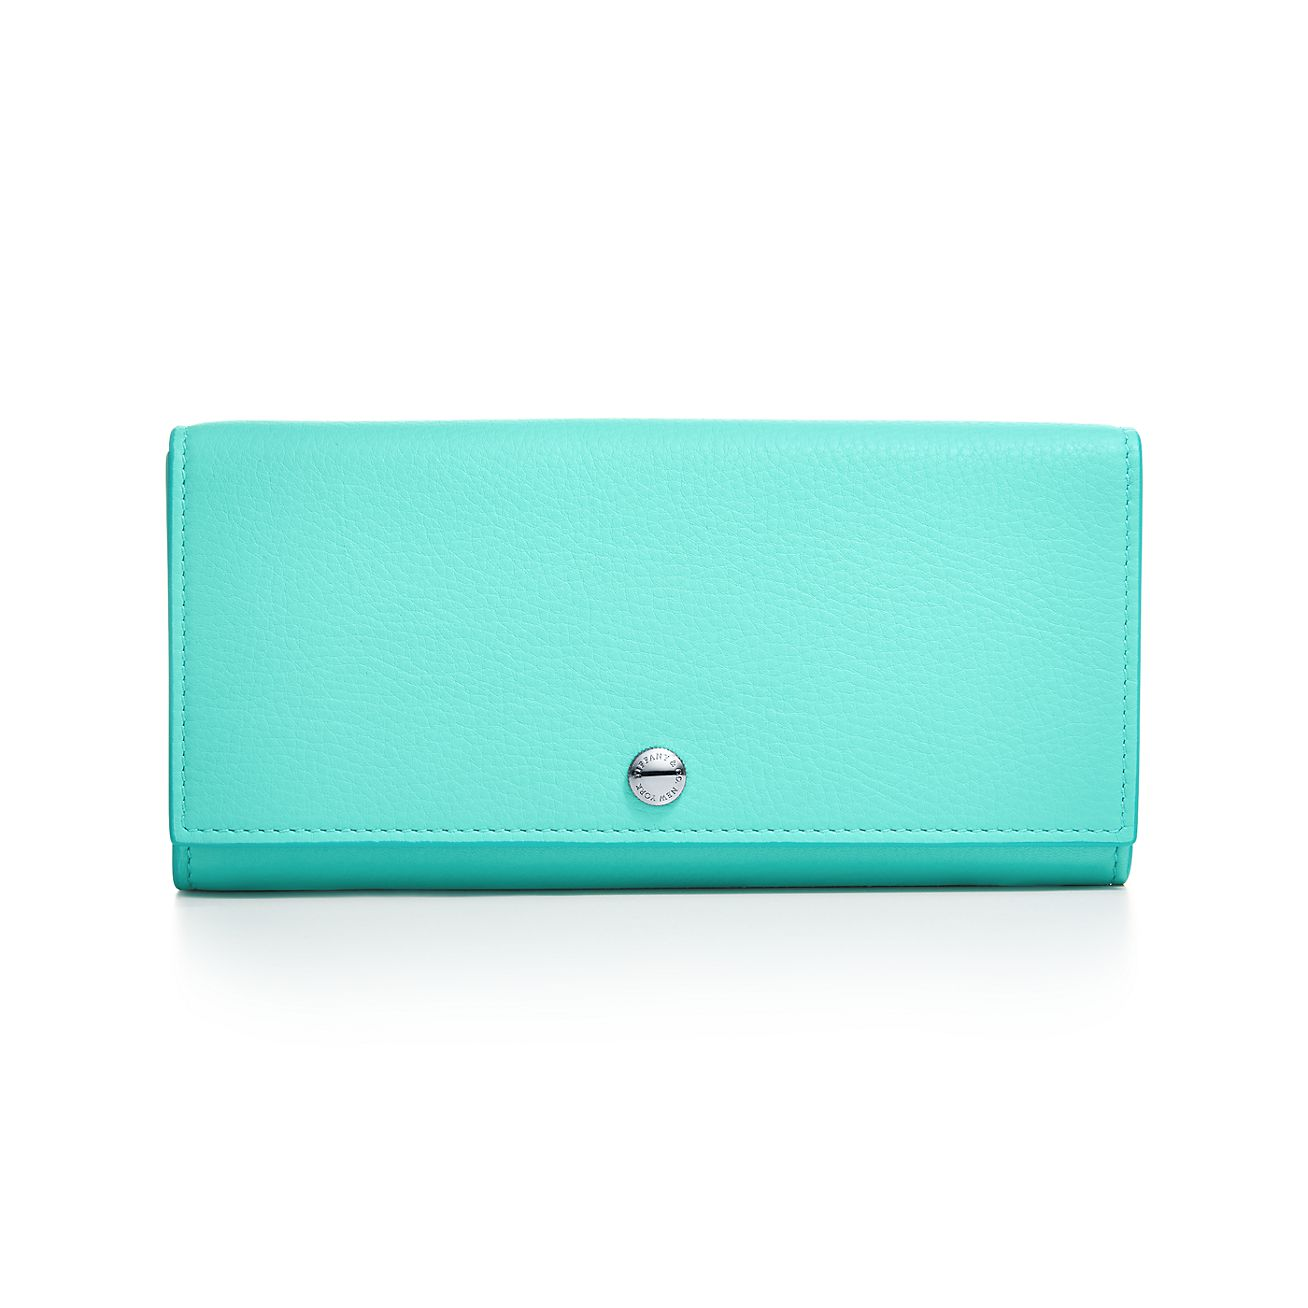 Shop Leather Goods | Tiffany & Co.